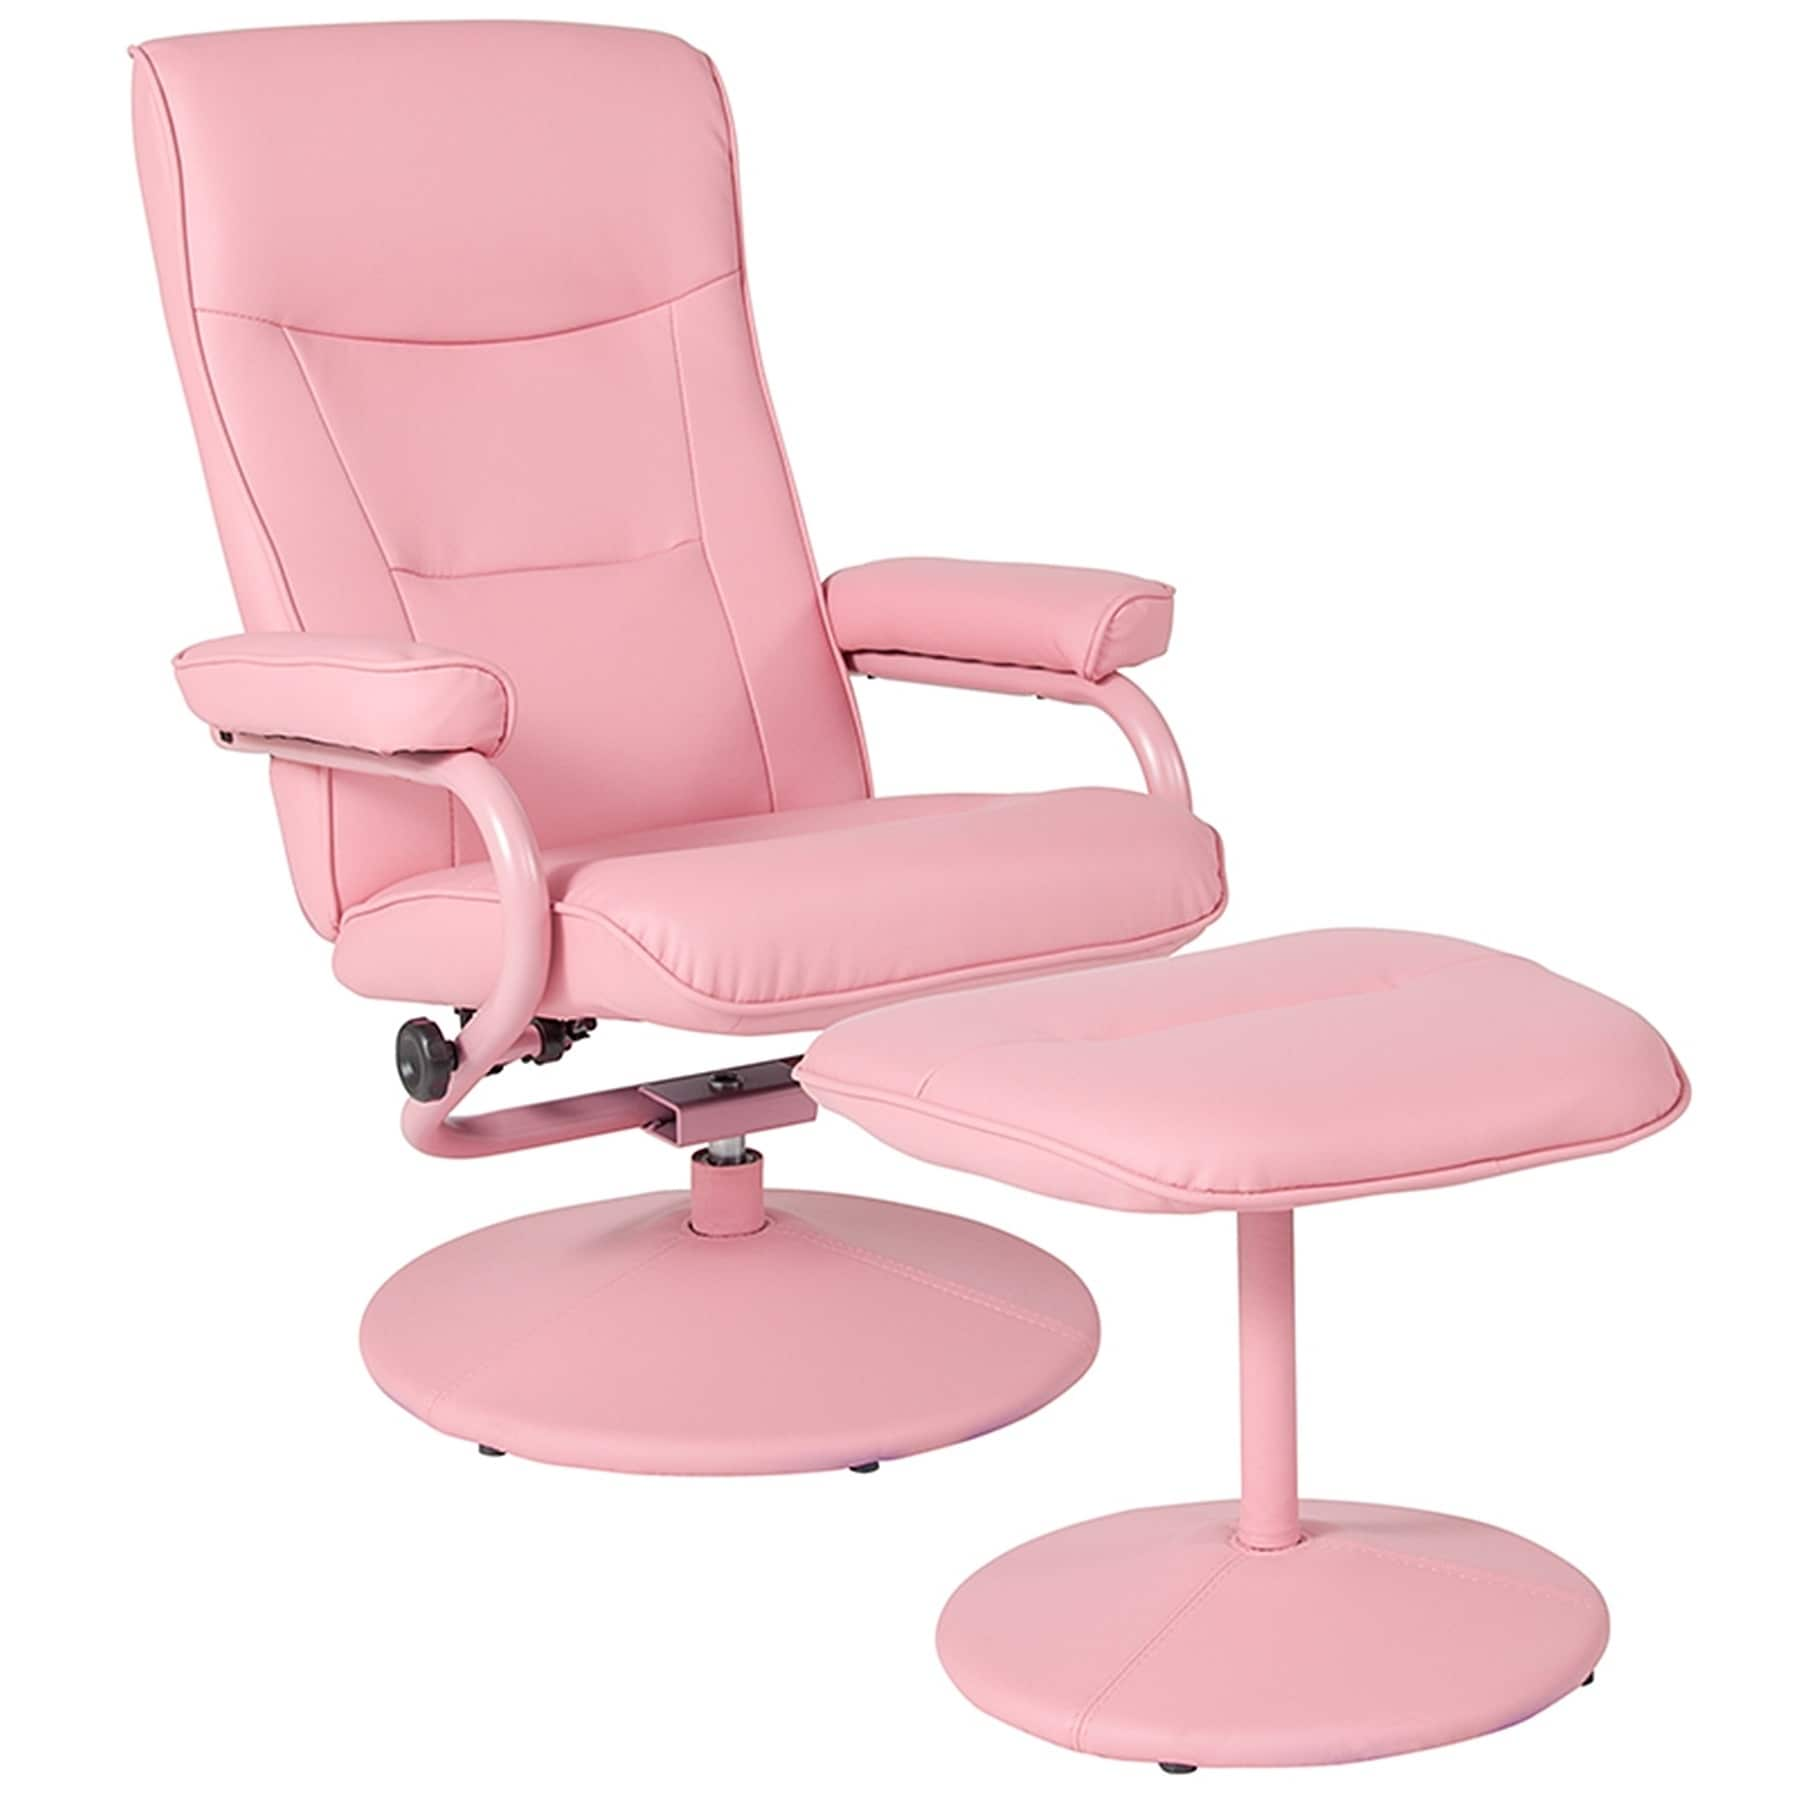 Buy Recliners Pink Online At Overstock Our Best Living Room